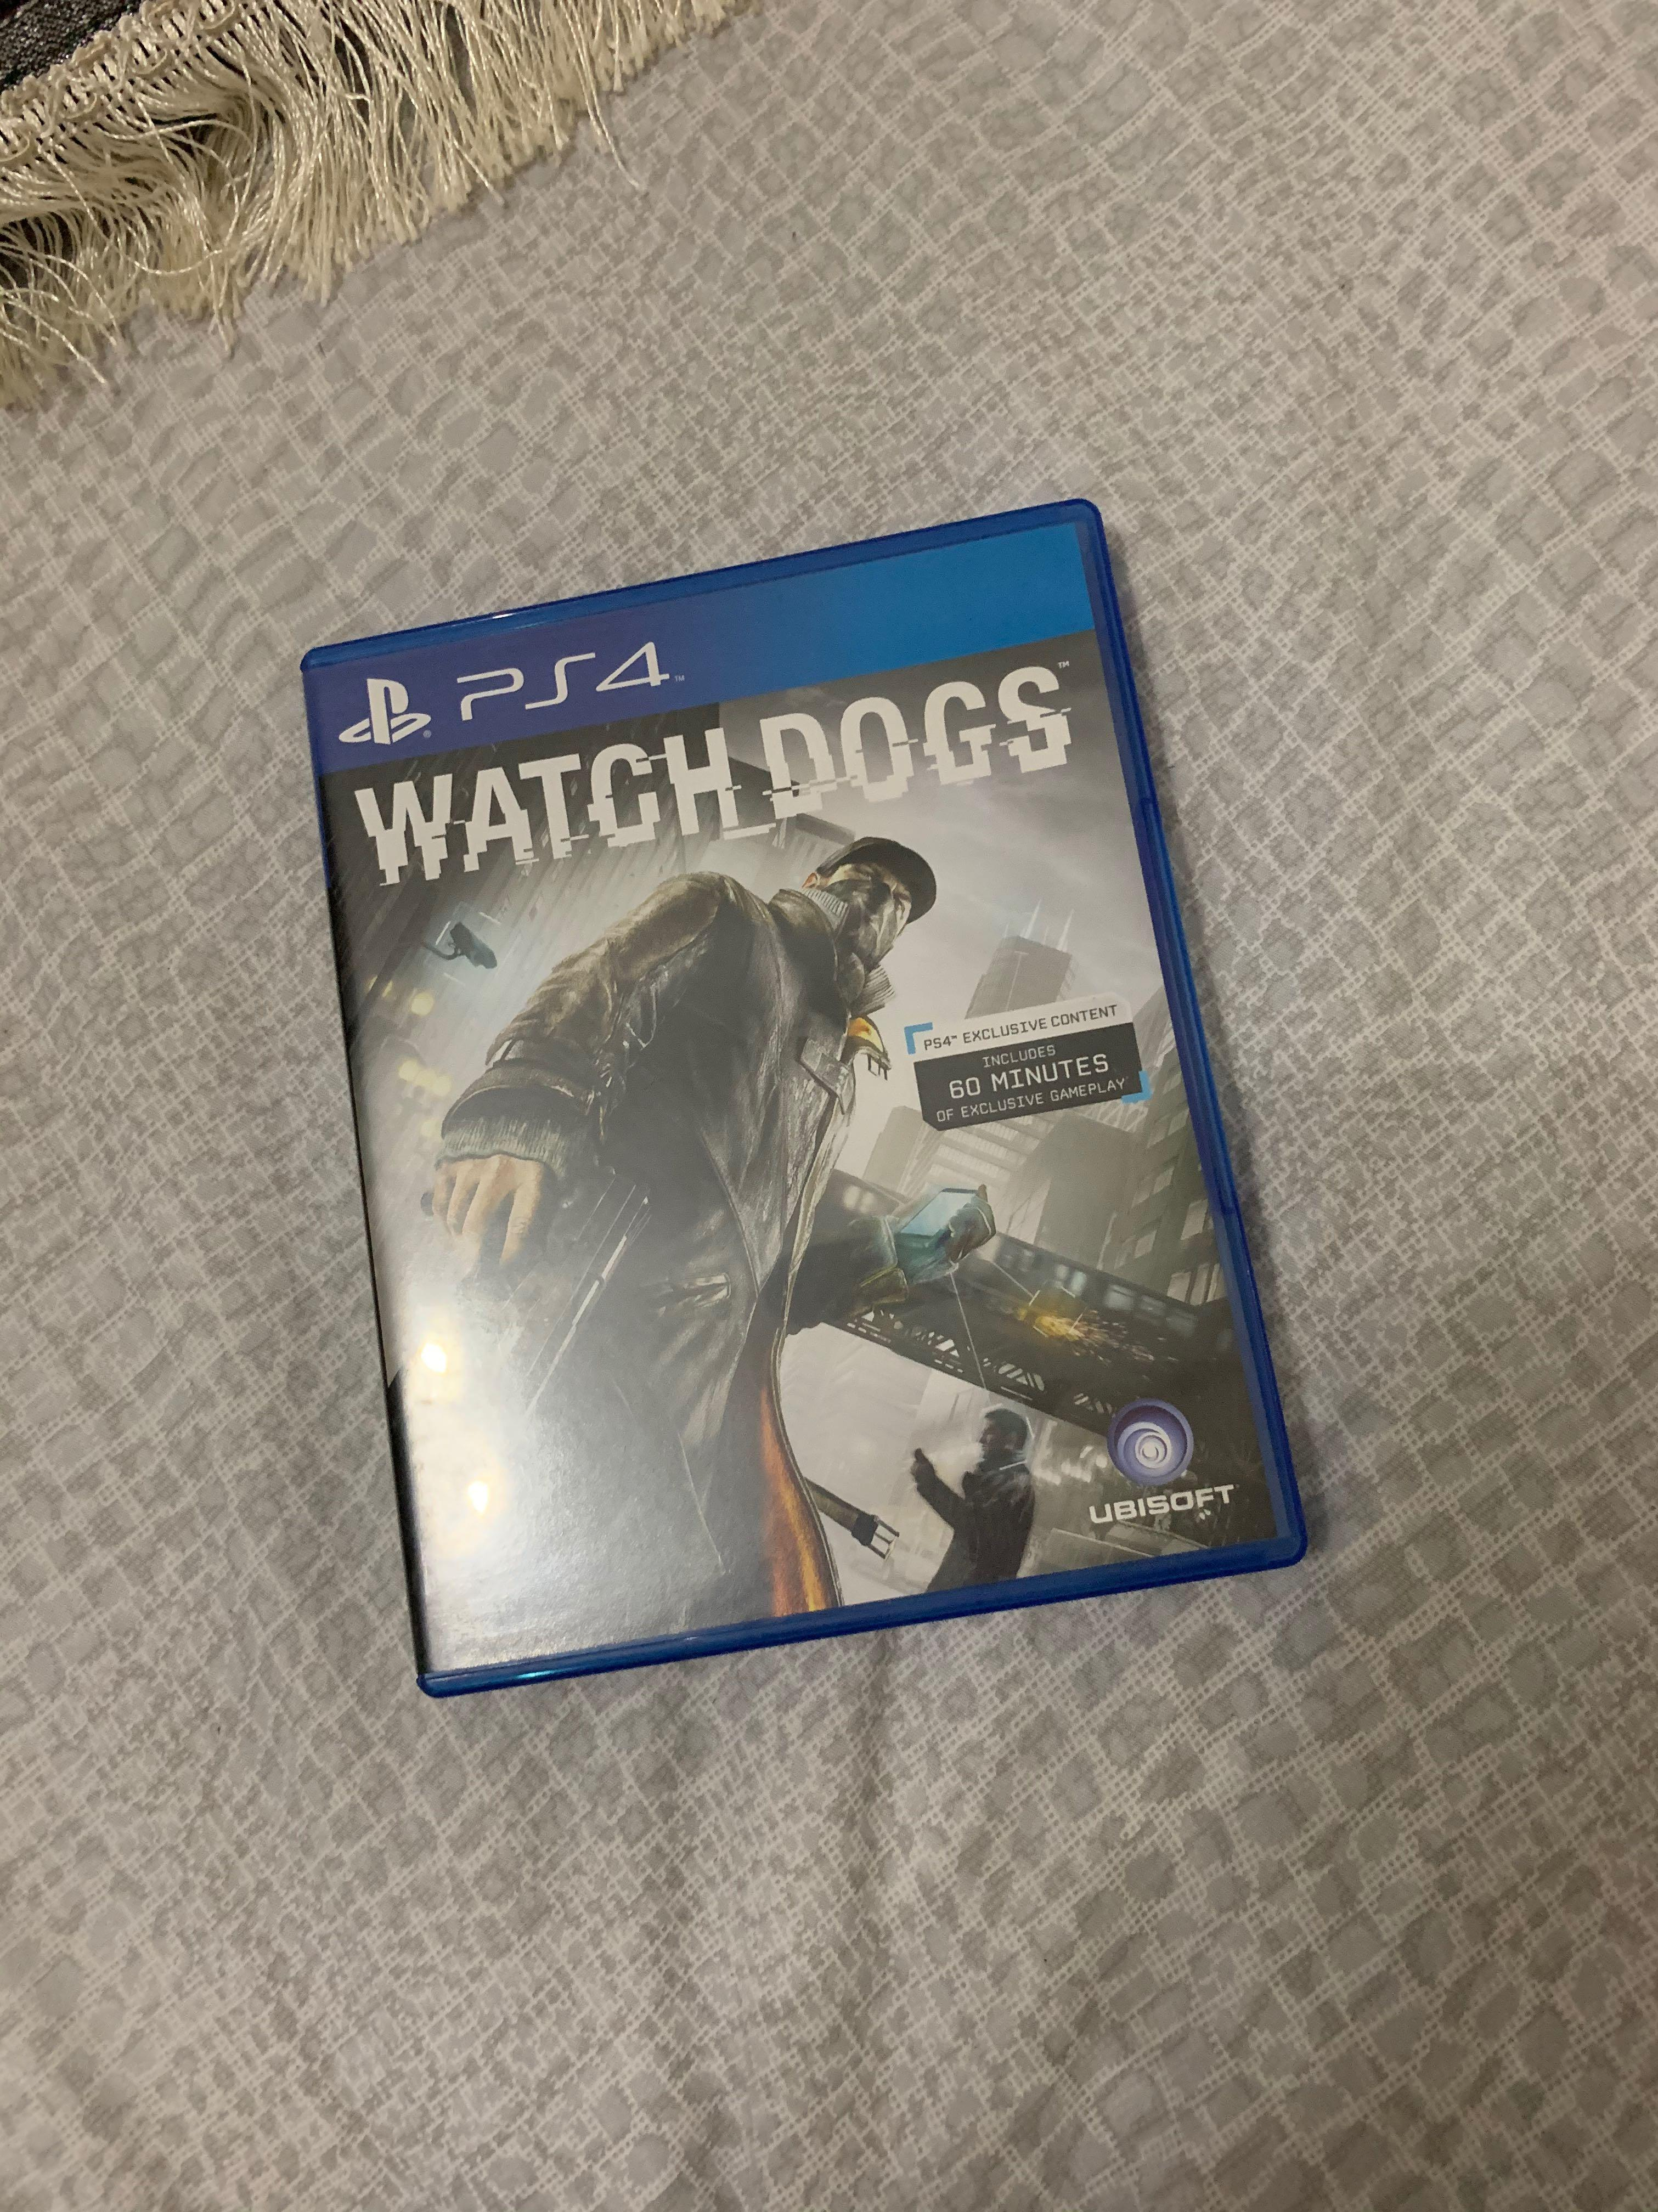 PS4 Watchdogs (Used)